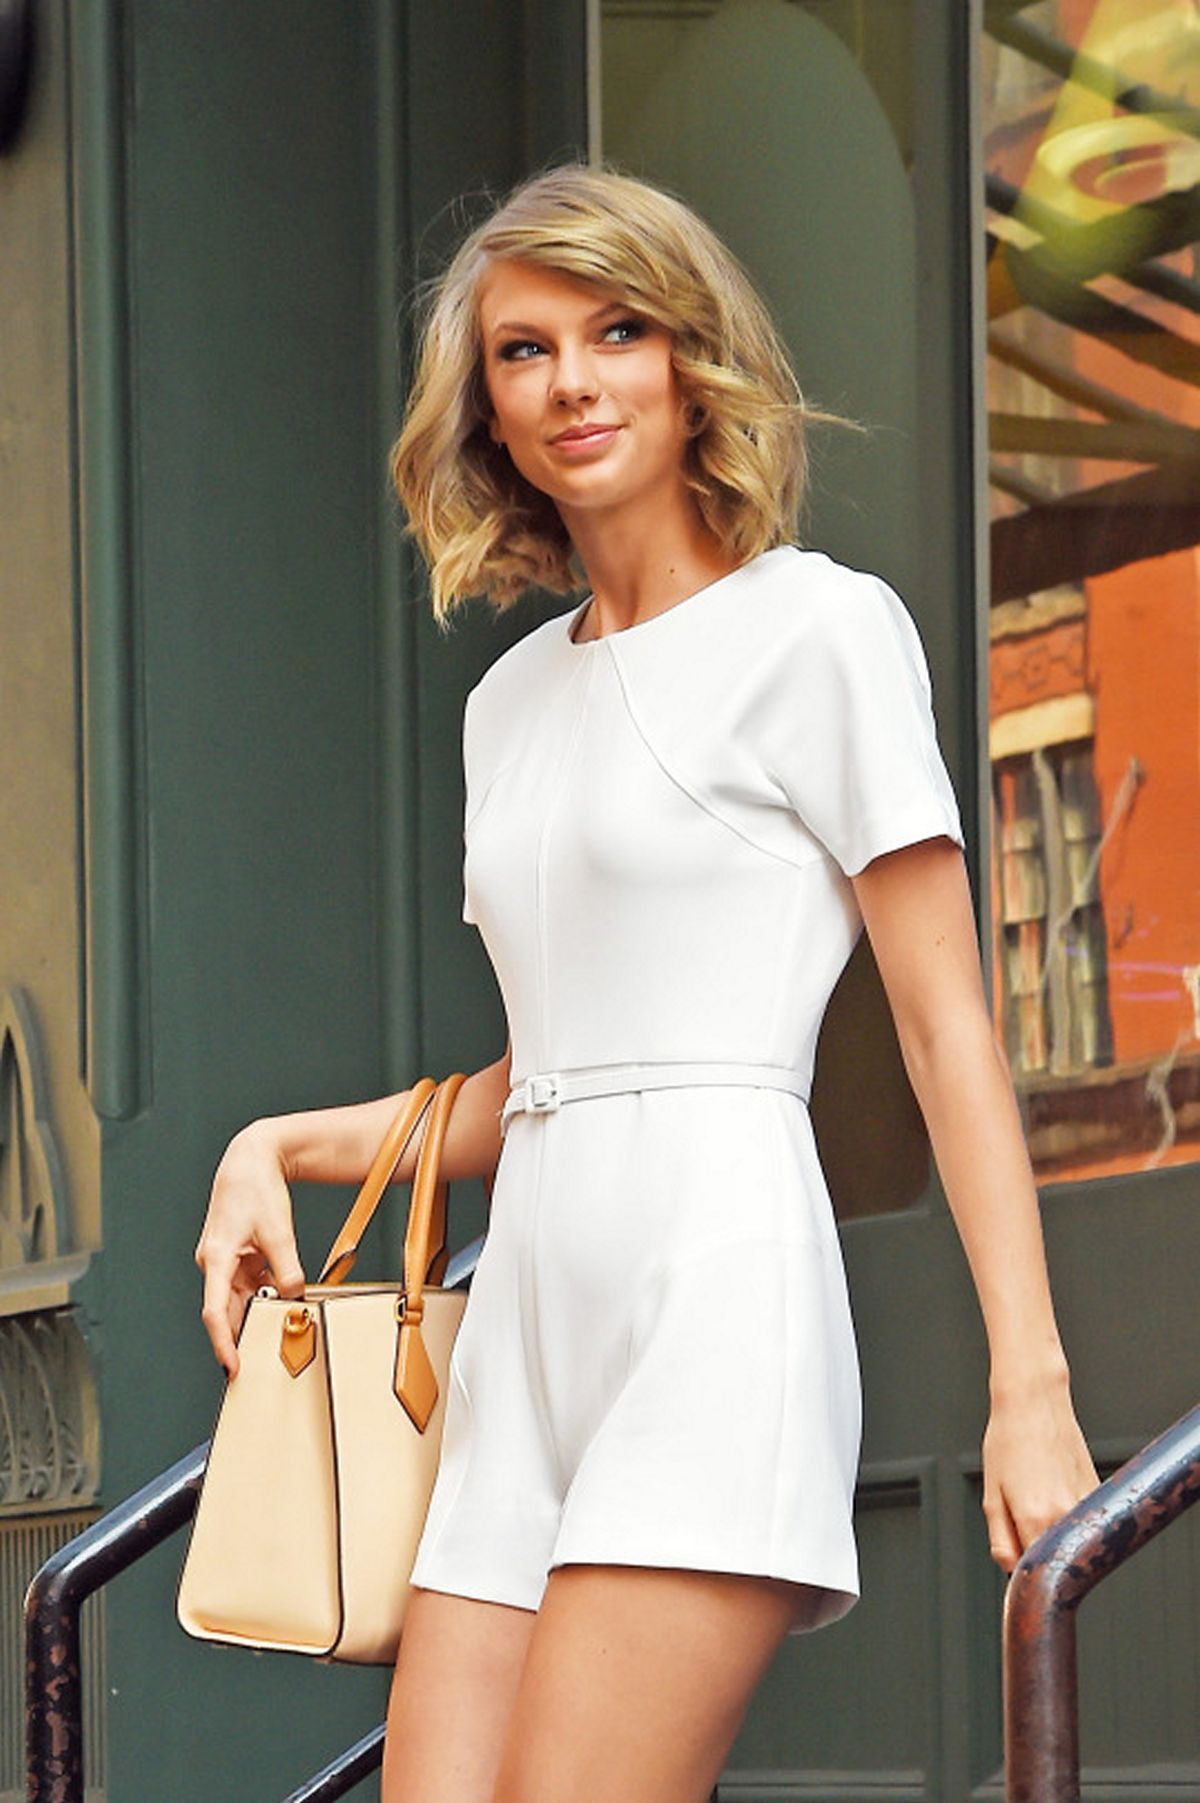 Taylor swift's most epic fashion moments 18